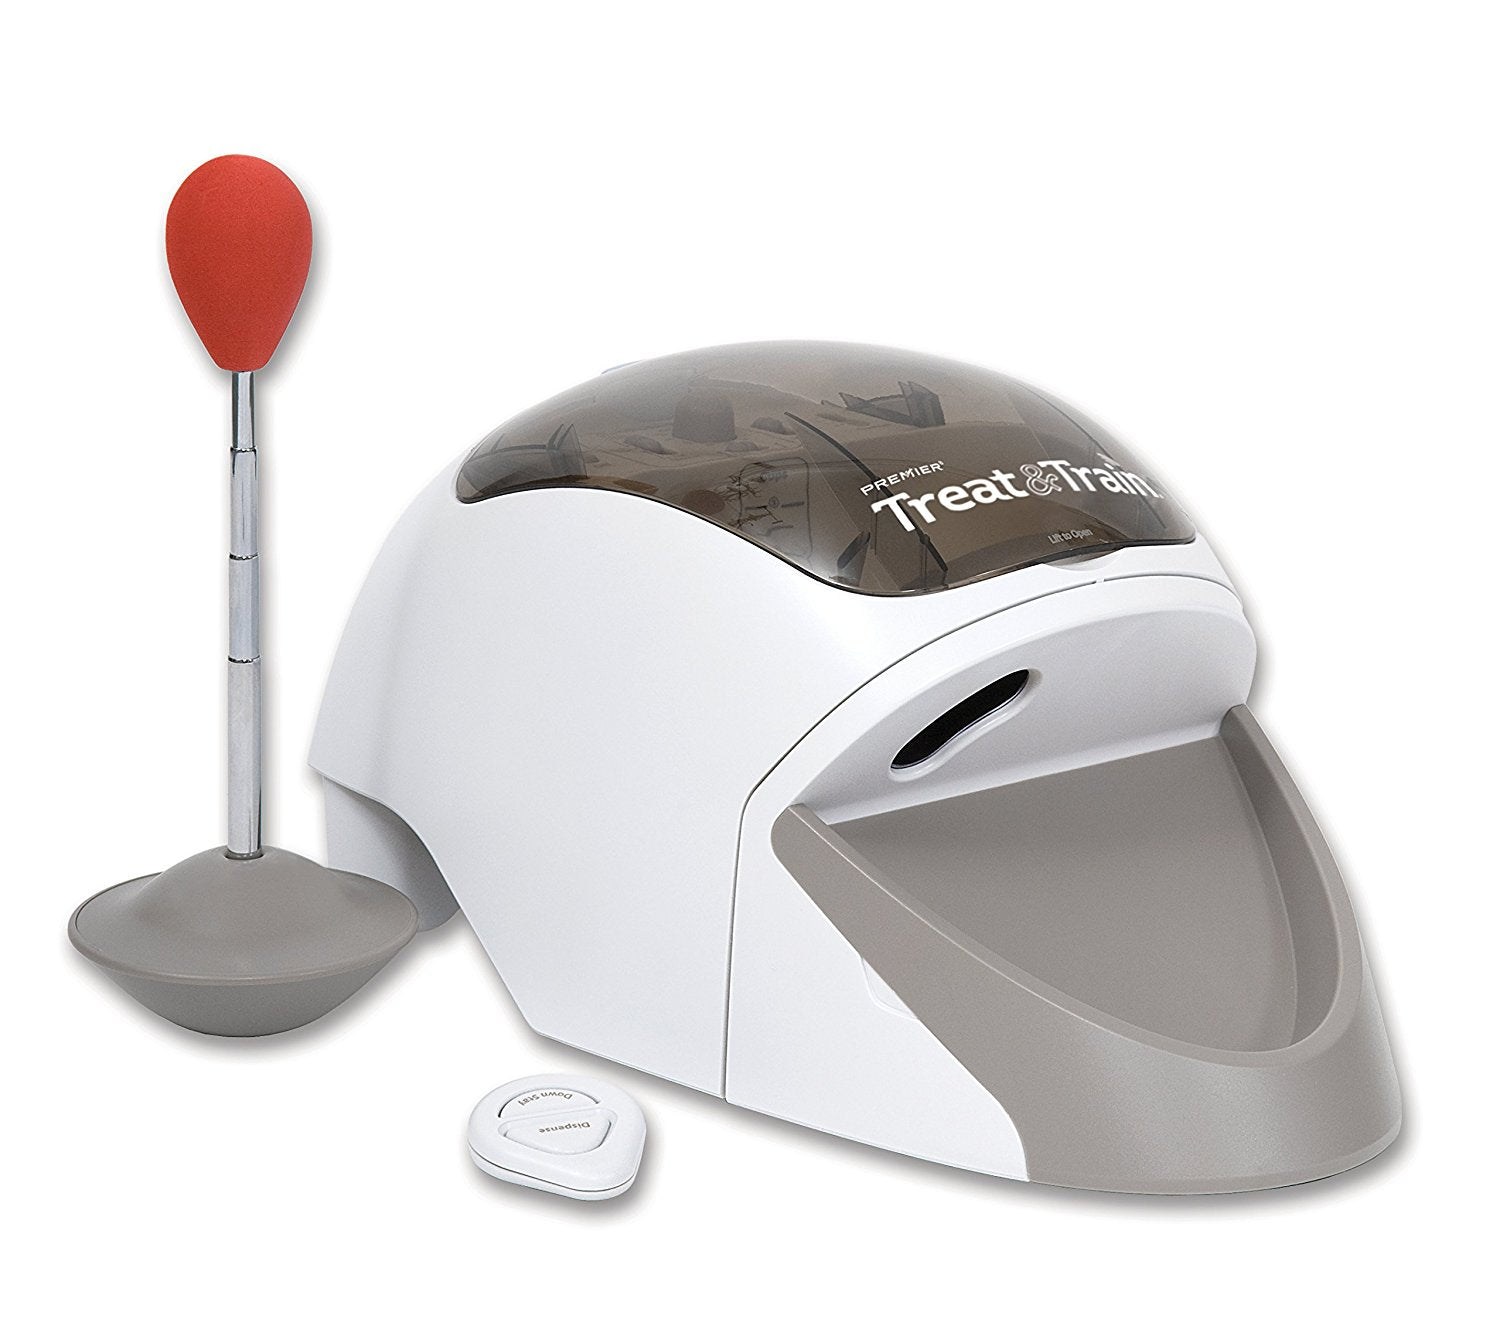 Premier 17587 Treat & Train Remote Reward Dog Trainer